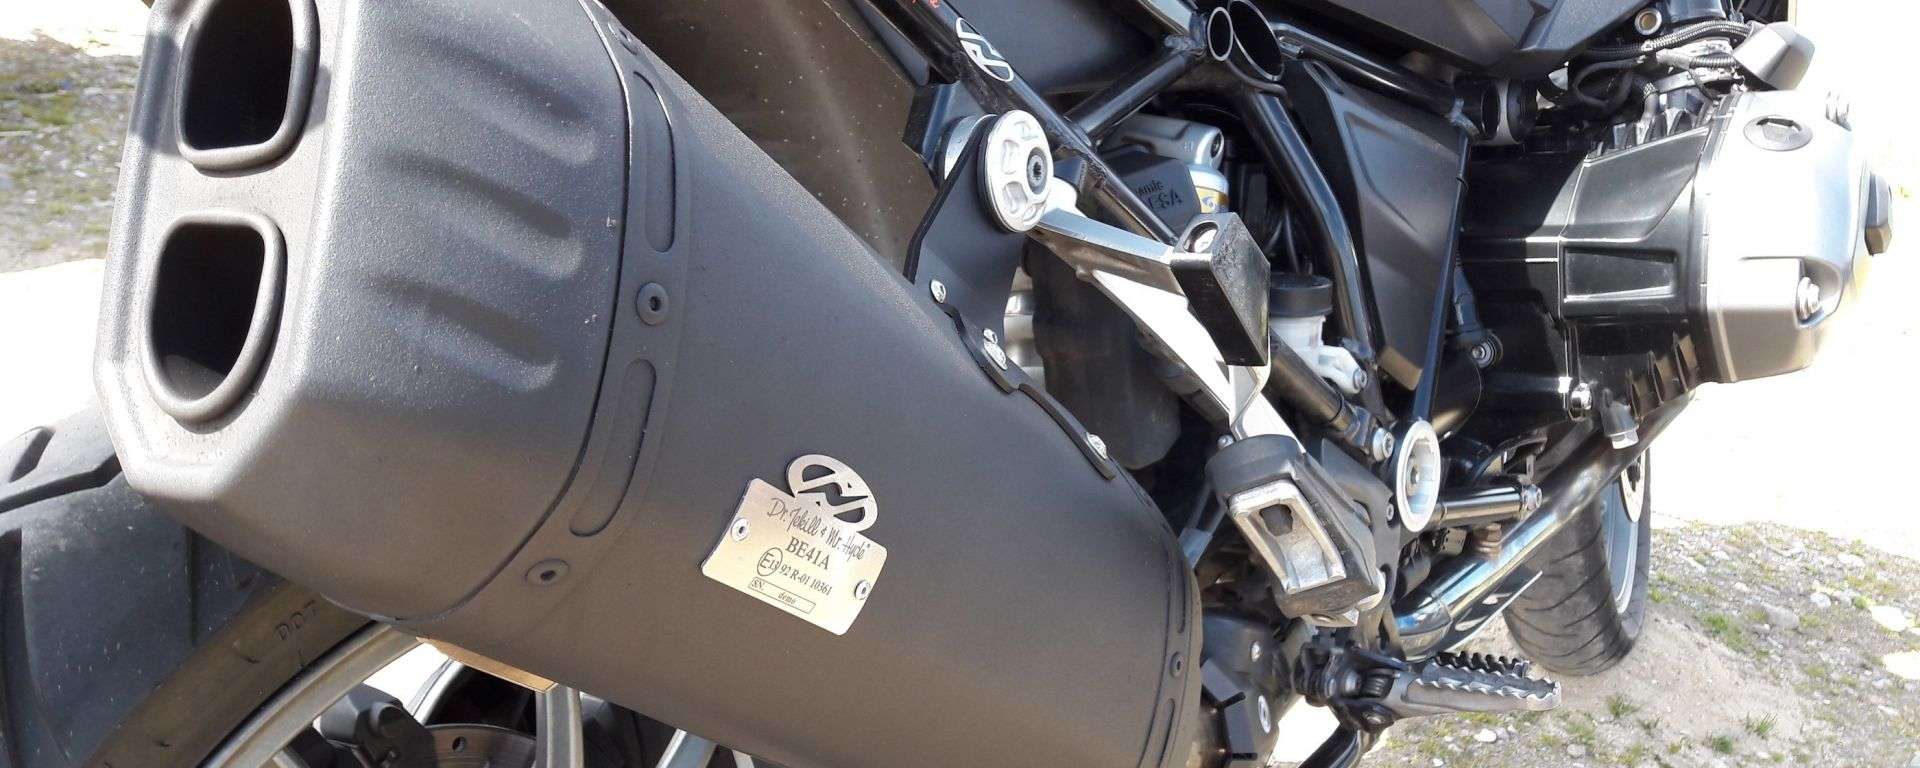 Dr. Jekyll & Mr. Hyde, scarico per BMW R 1200 GS